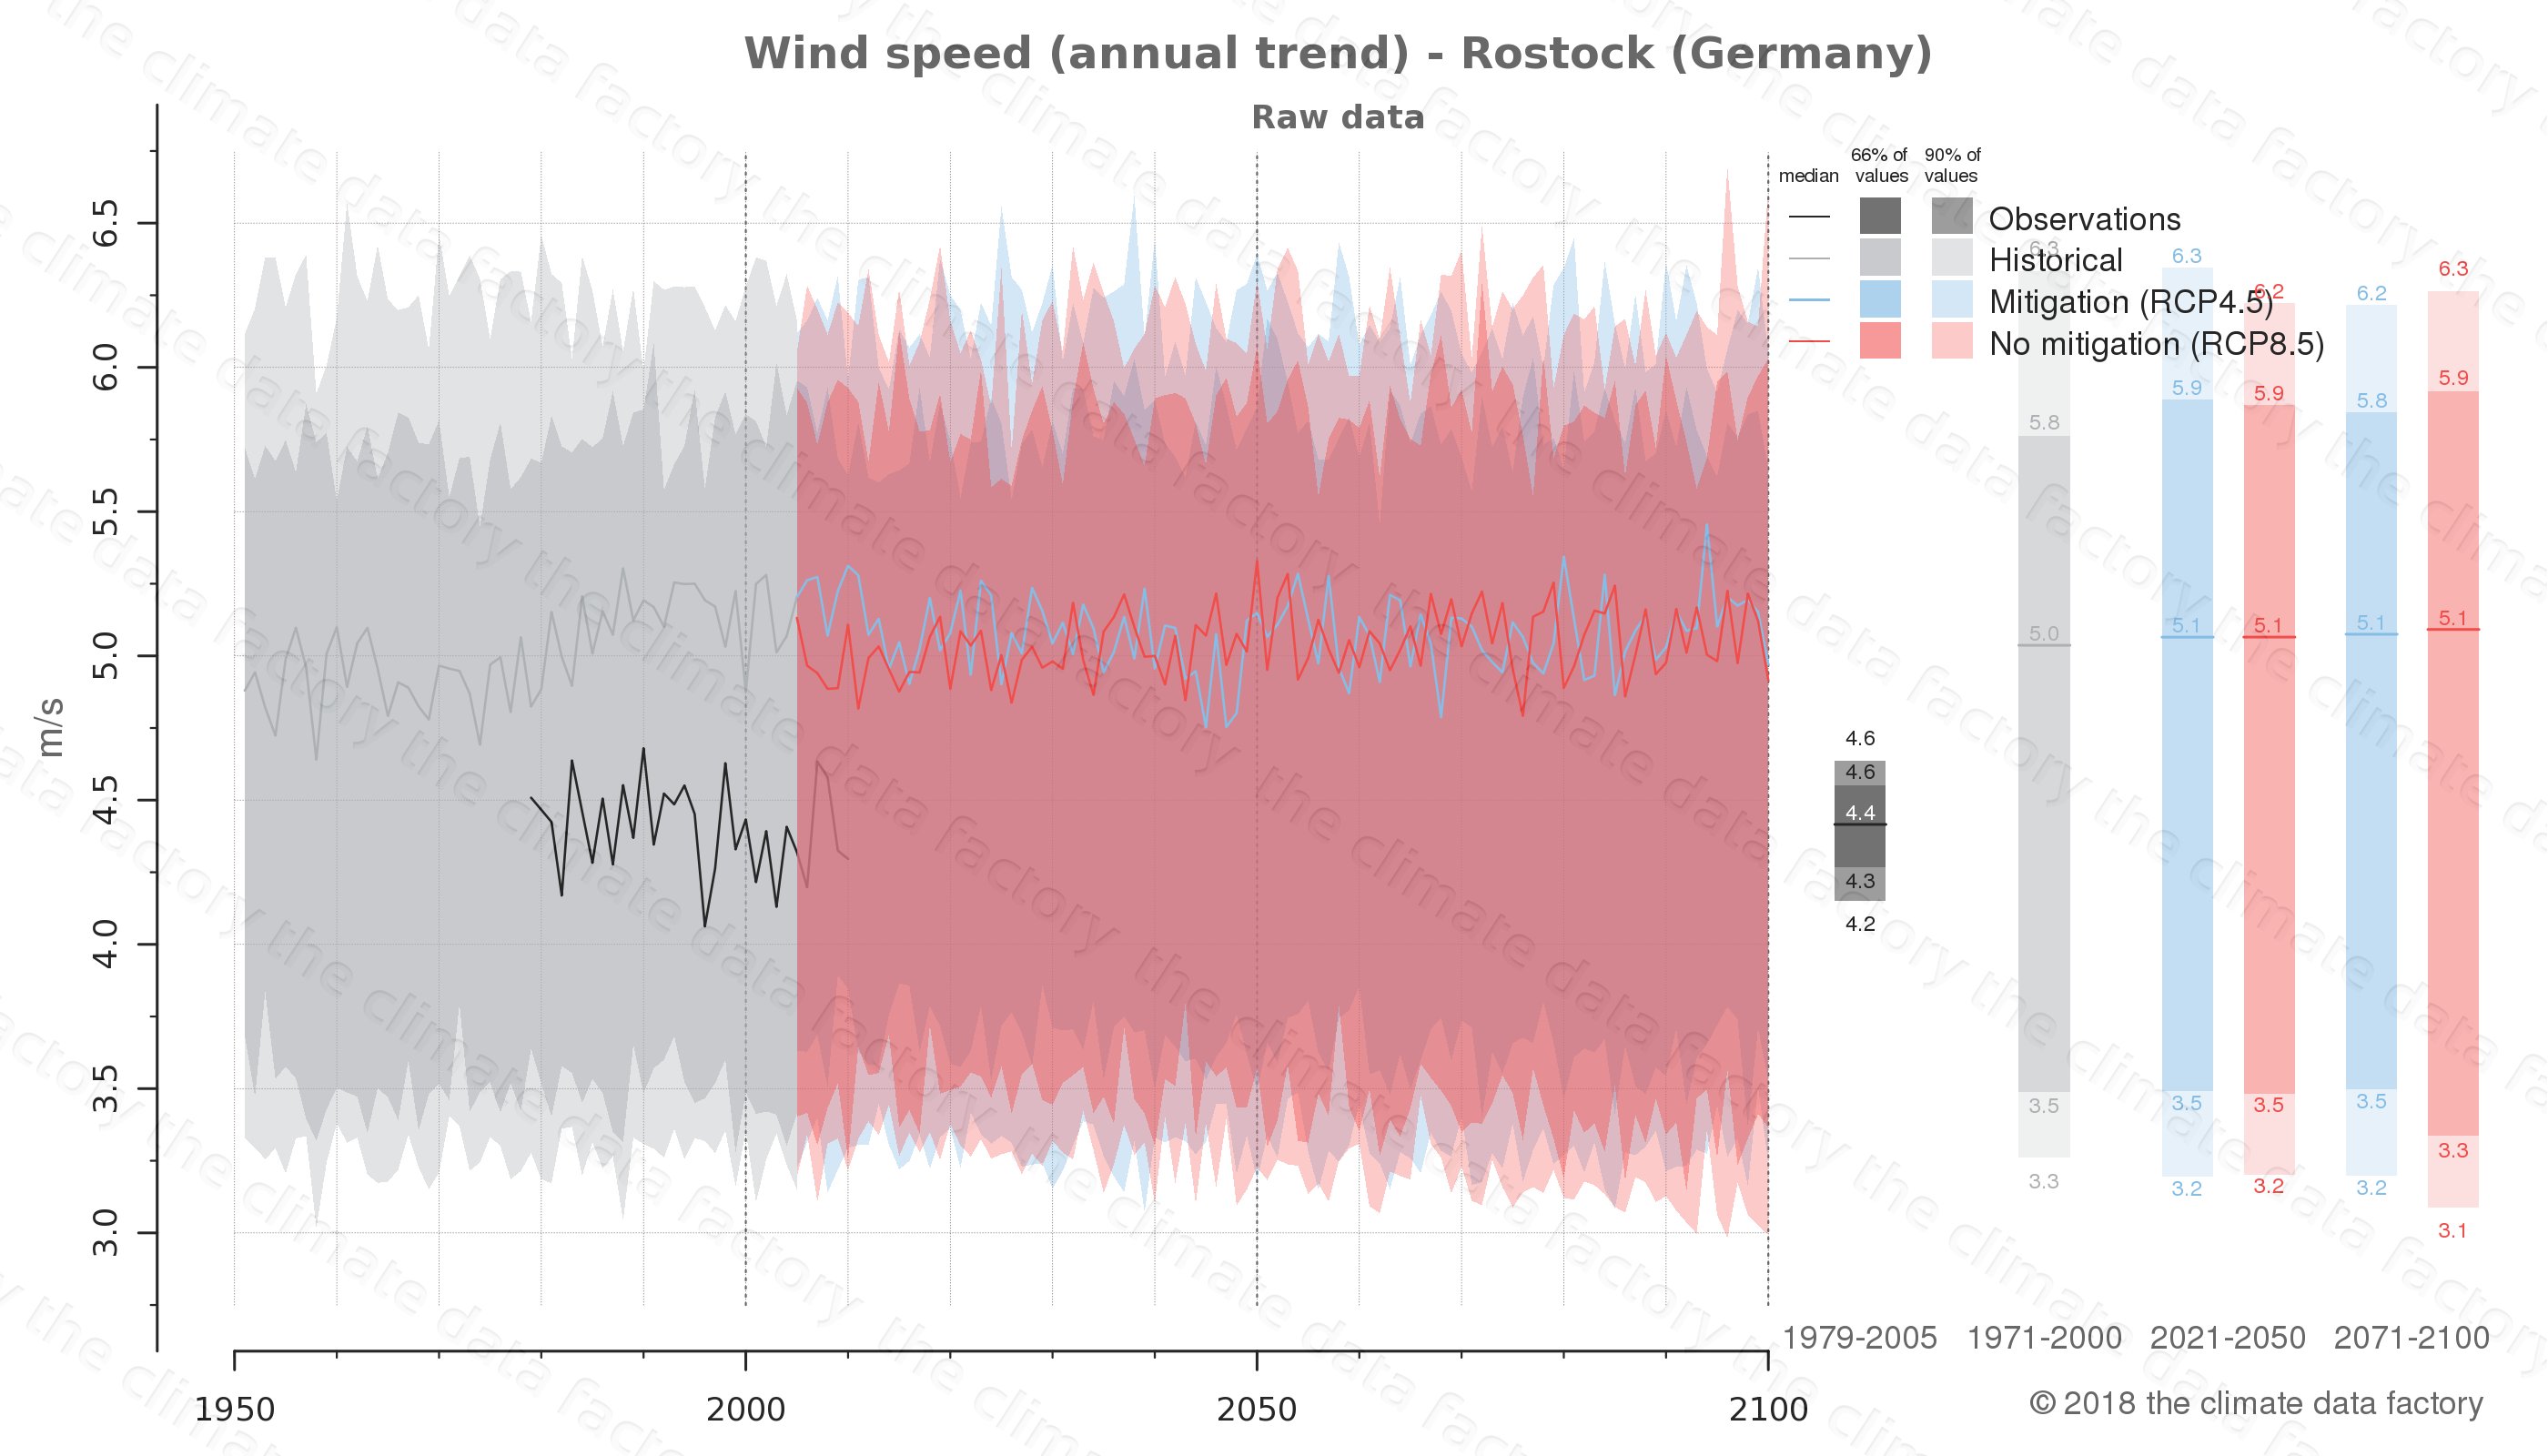 climate change data policy adaptation climate graph city data wind-speed rostock germany